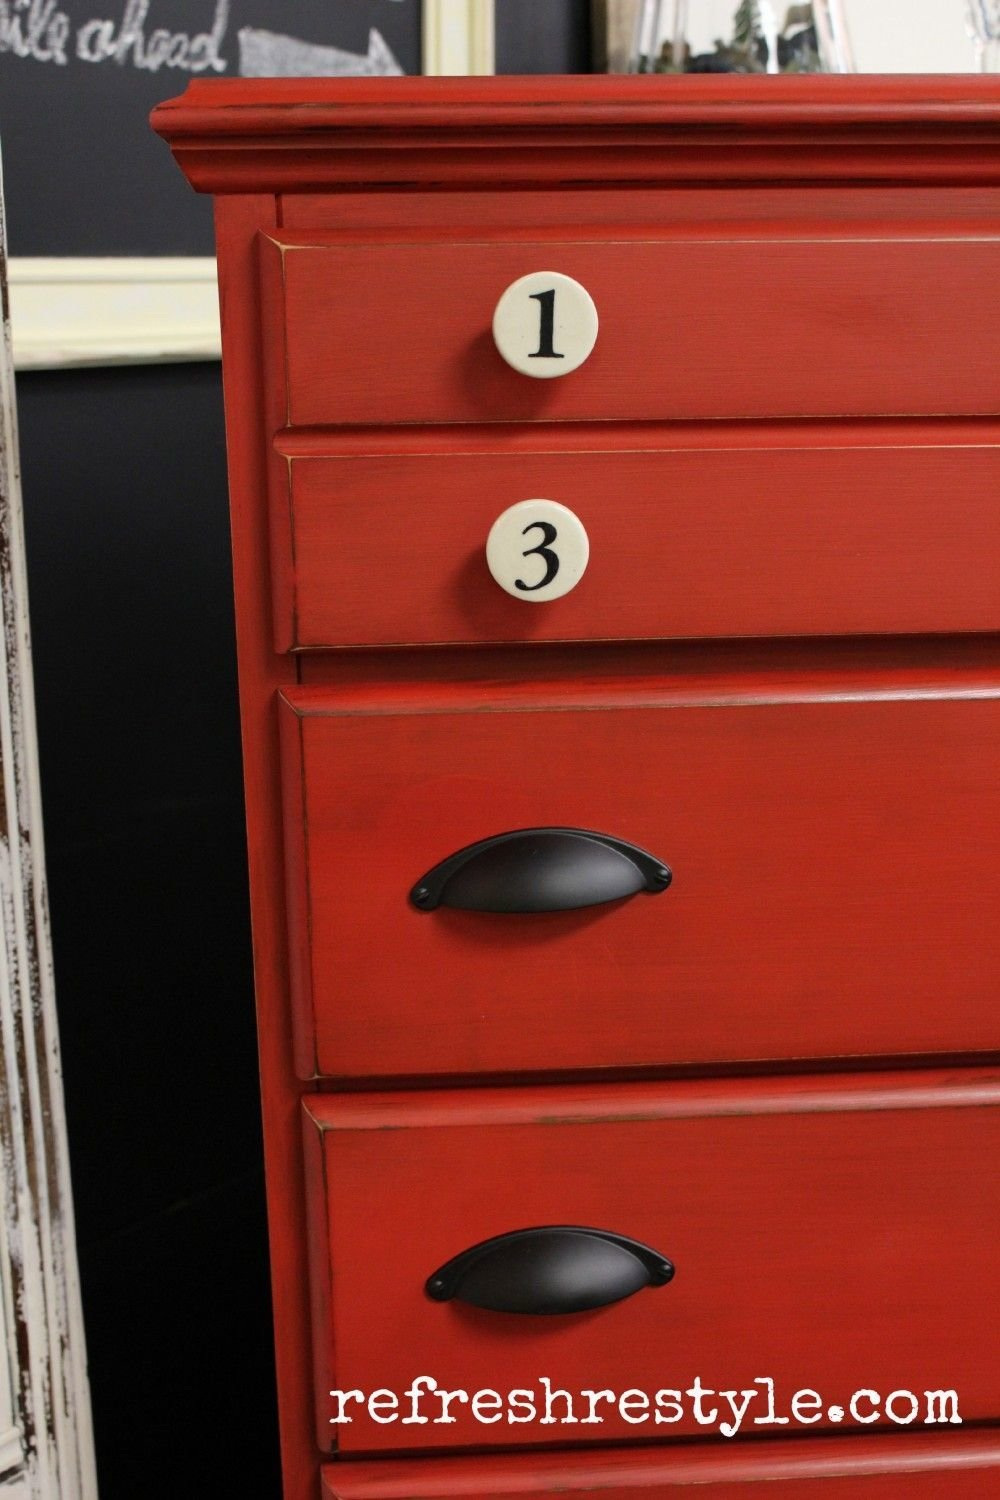 Best Big Red Chest Of Drawers Home Decorating Chest Of With Pictures